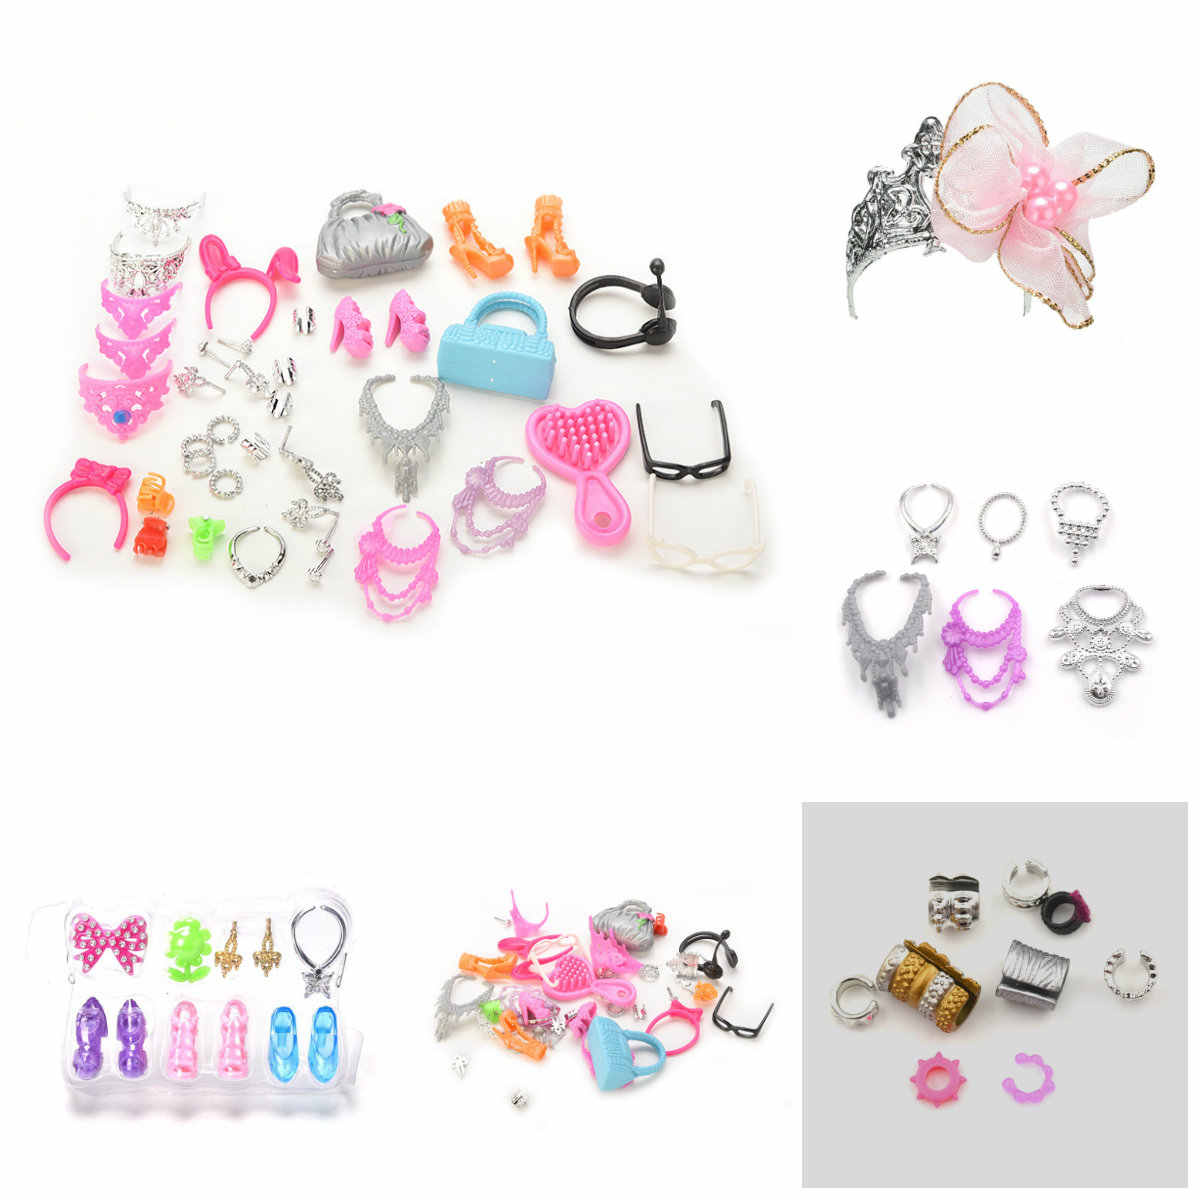 10pcs Doll Decor Fashion Jewelry for girl Necklace Earring Bowknot Crown Accessory Dolls Girl Kids Gift